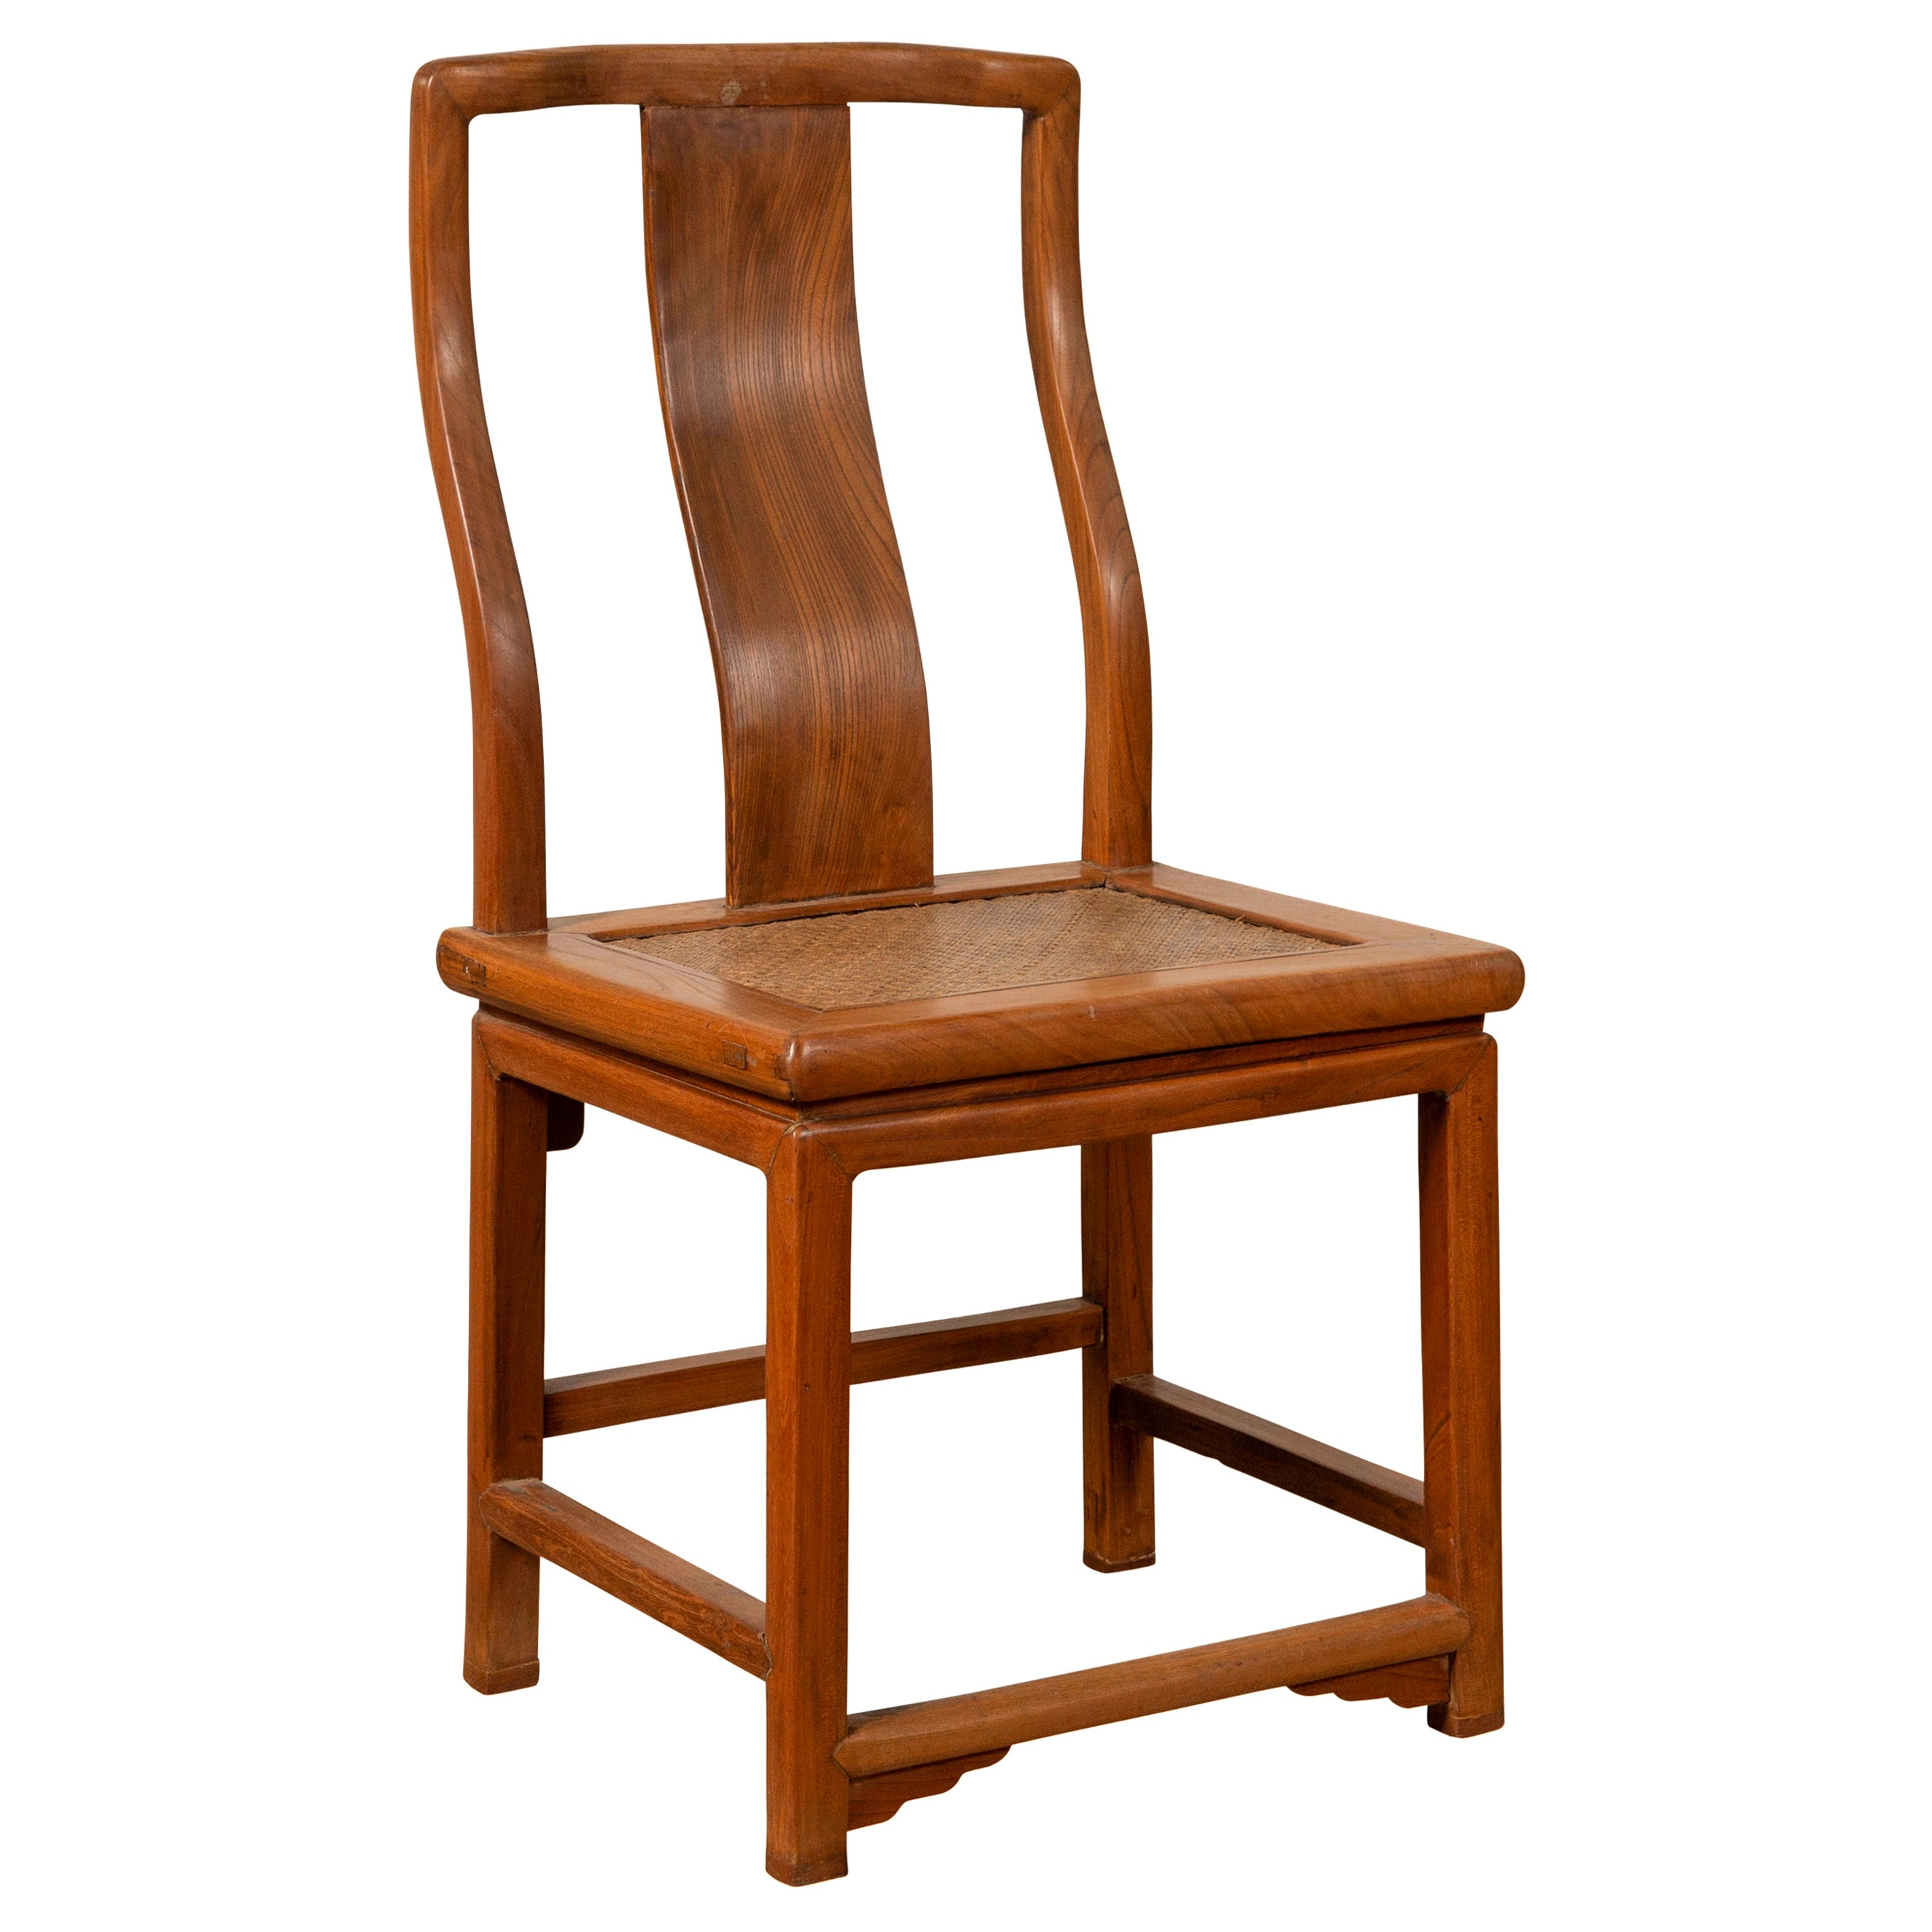 Ming Dynasty Style Natural Wood Wedding Side Chair with Woven Rattan Seat